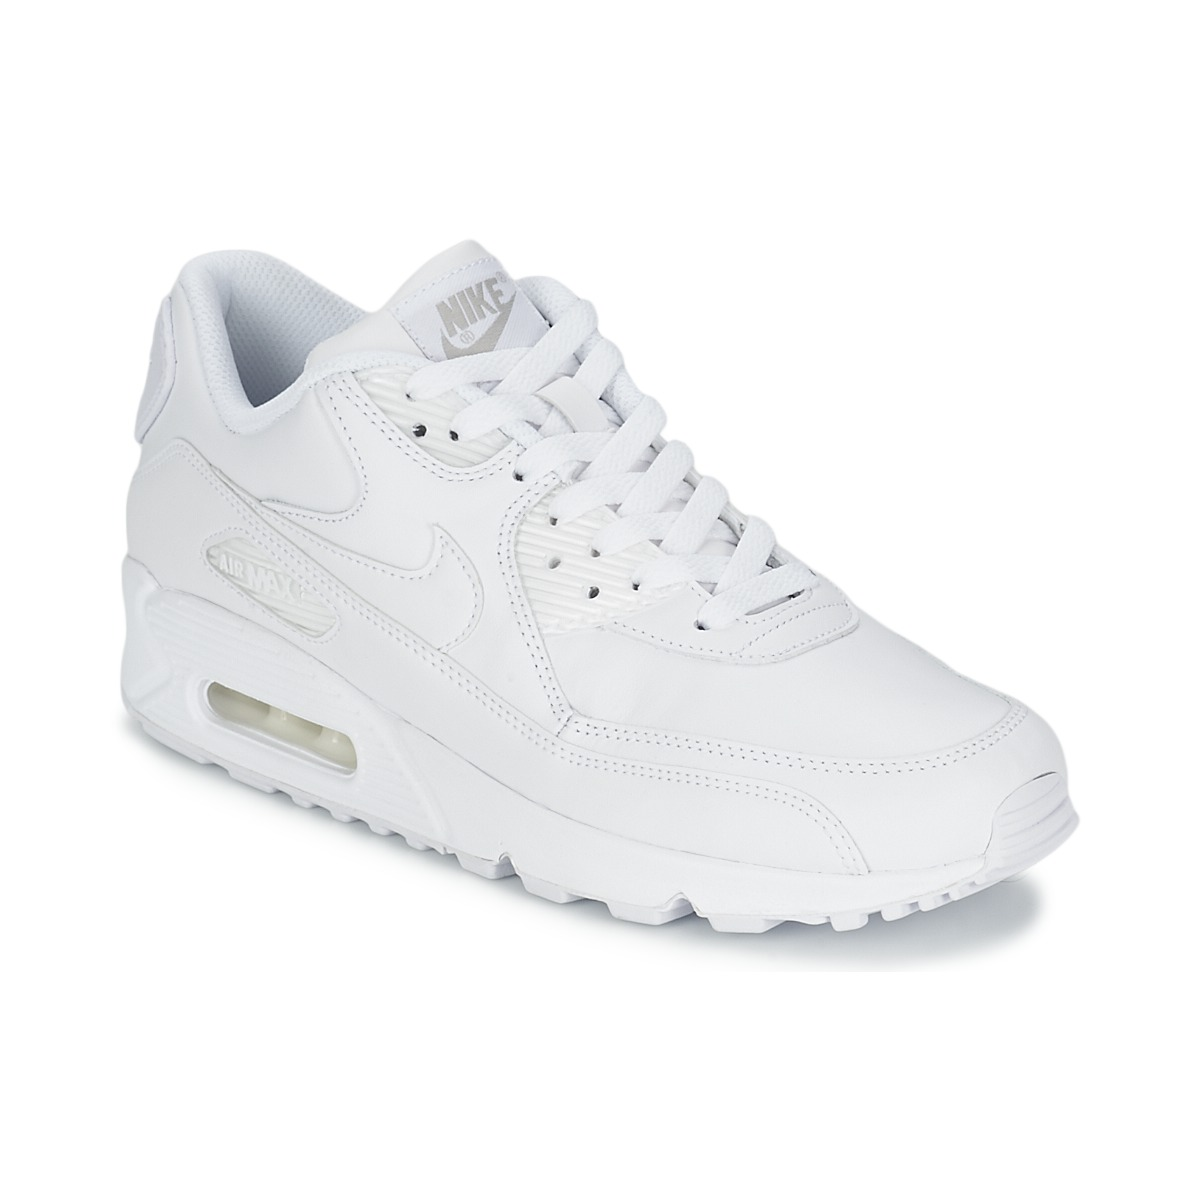 baskets basses nike air max 90 ultra essential w blanc gris baskets femme spartoo ventes. Black Bedroom Furniture Sets. Home Design Ideas